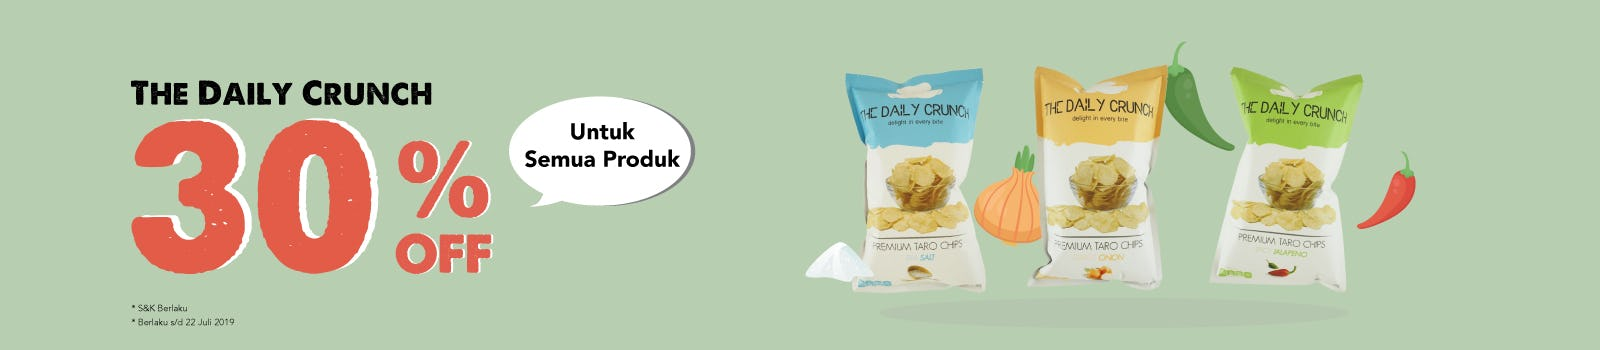 The Daily Crunch 30% OFF Semua Produk